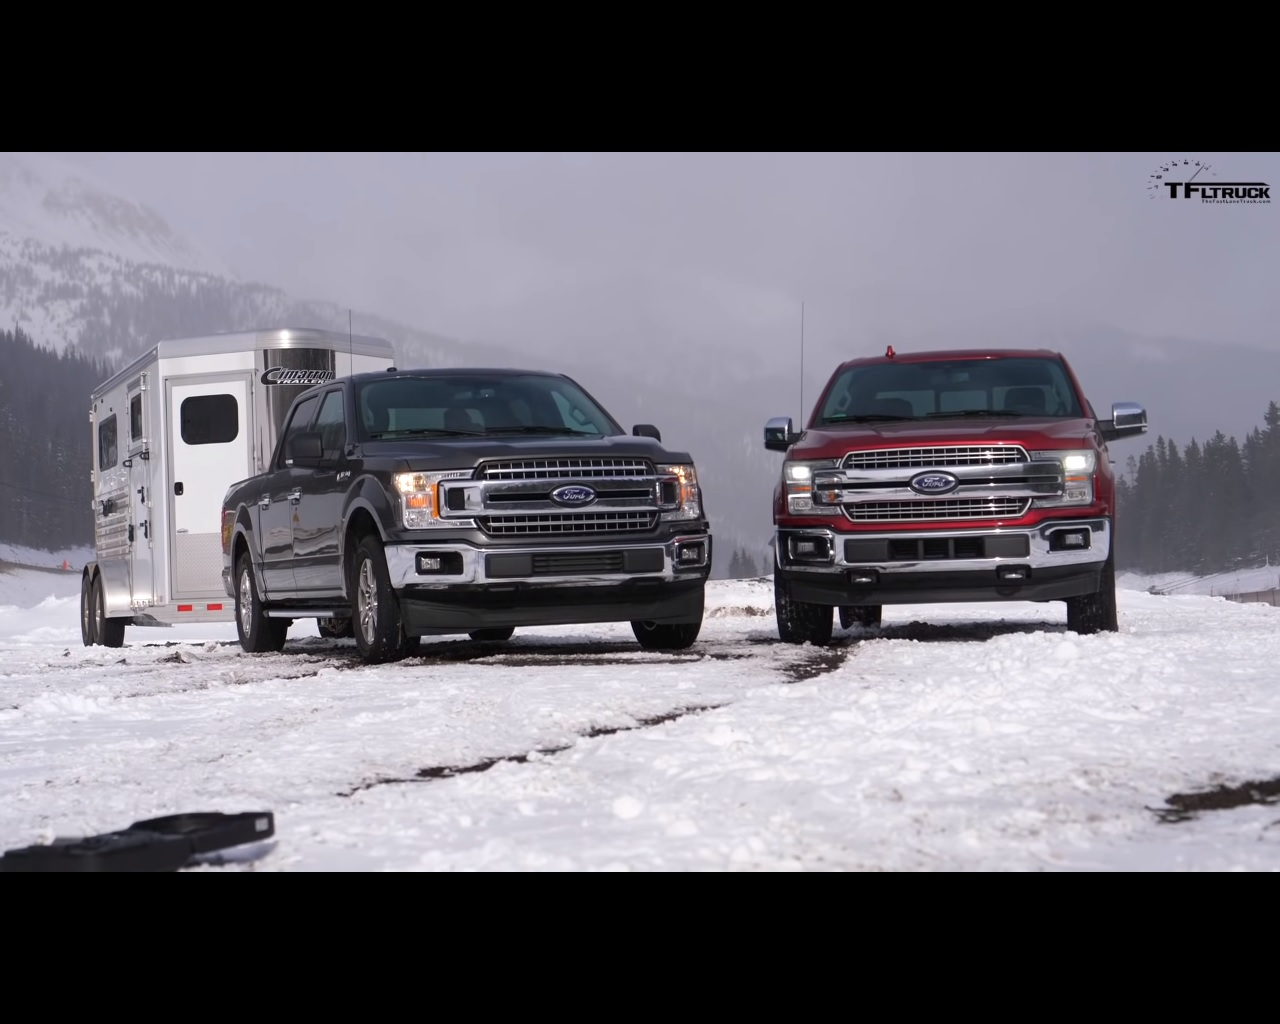 f 150 coyote v8 vs f 150 ecoboost v6 which is better for towing autoevolution. Black Bedroom Furniture Sets. Home Design Ideas